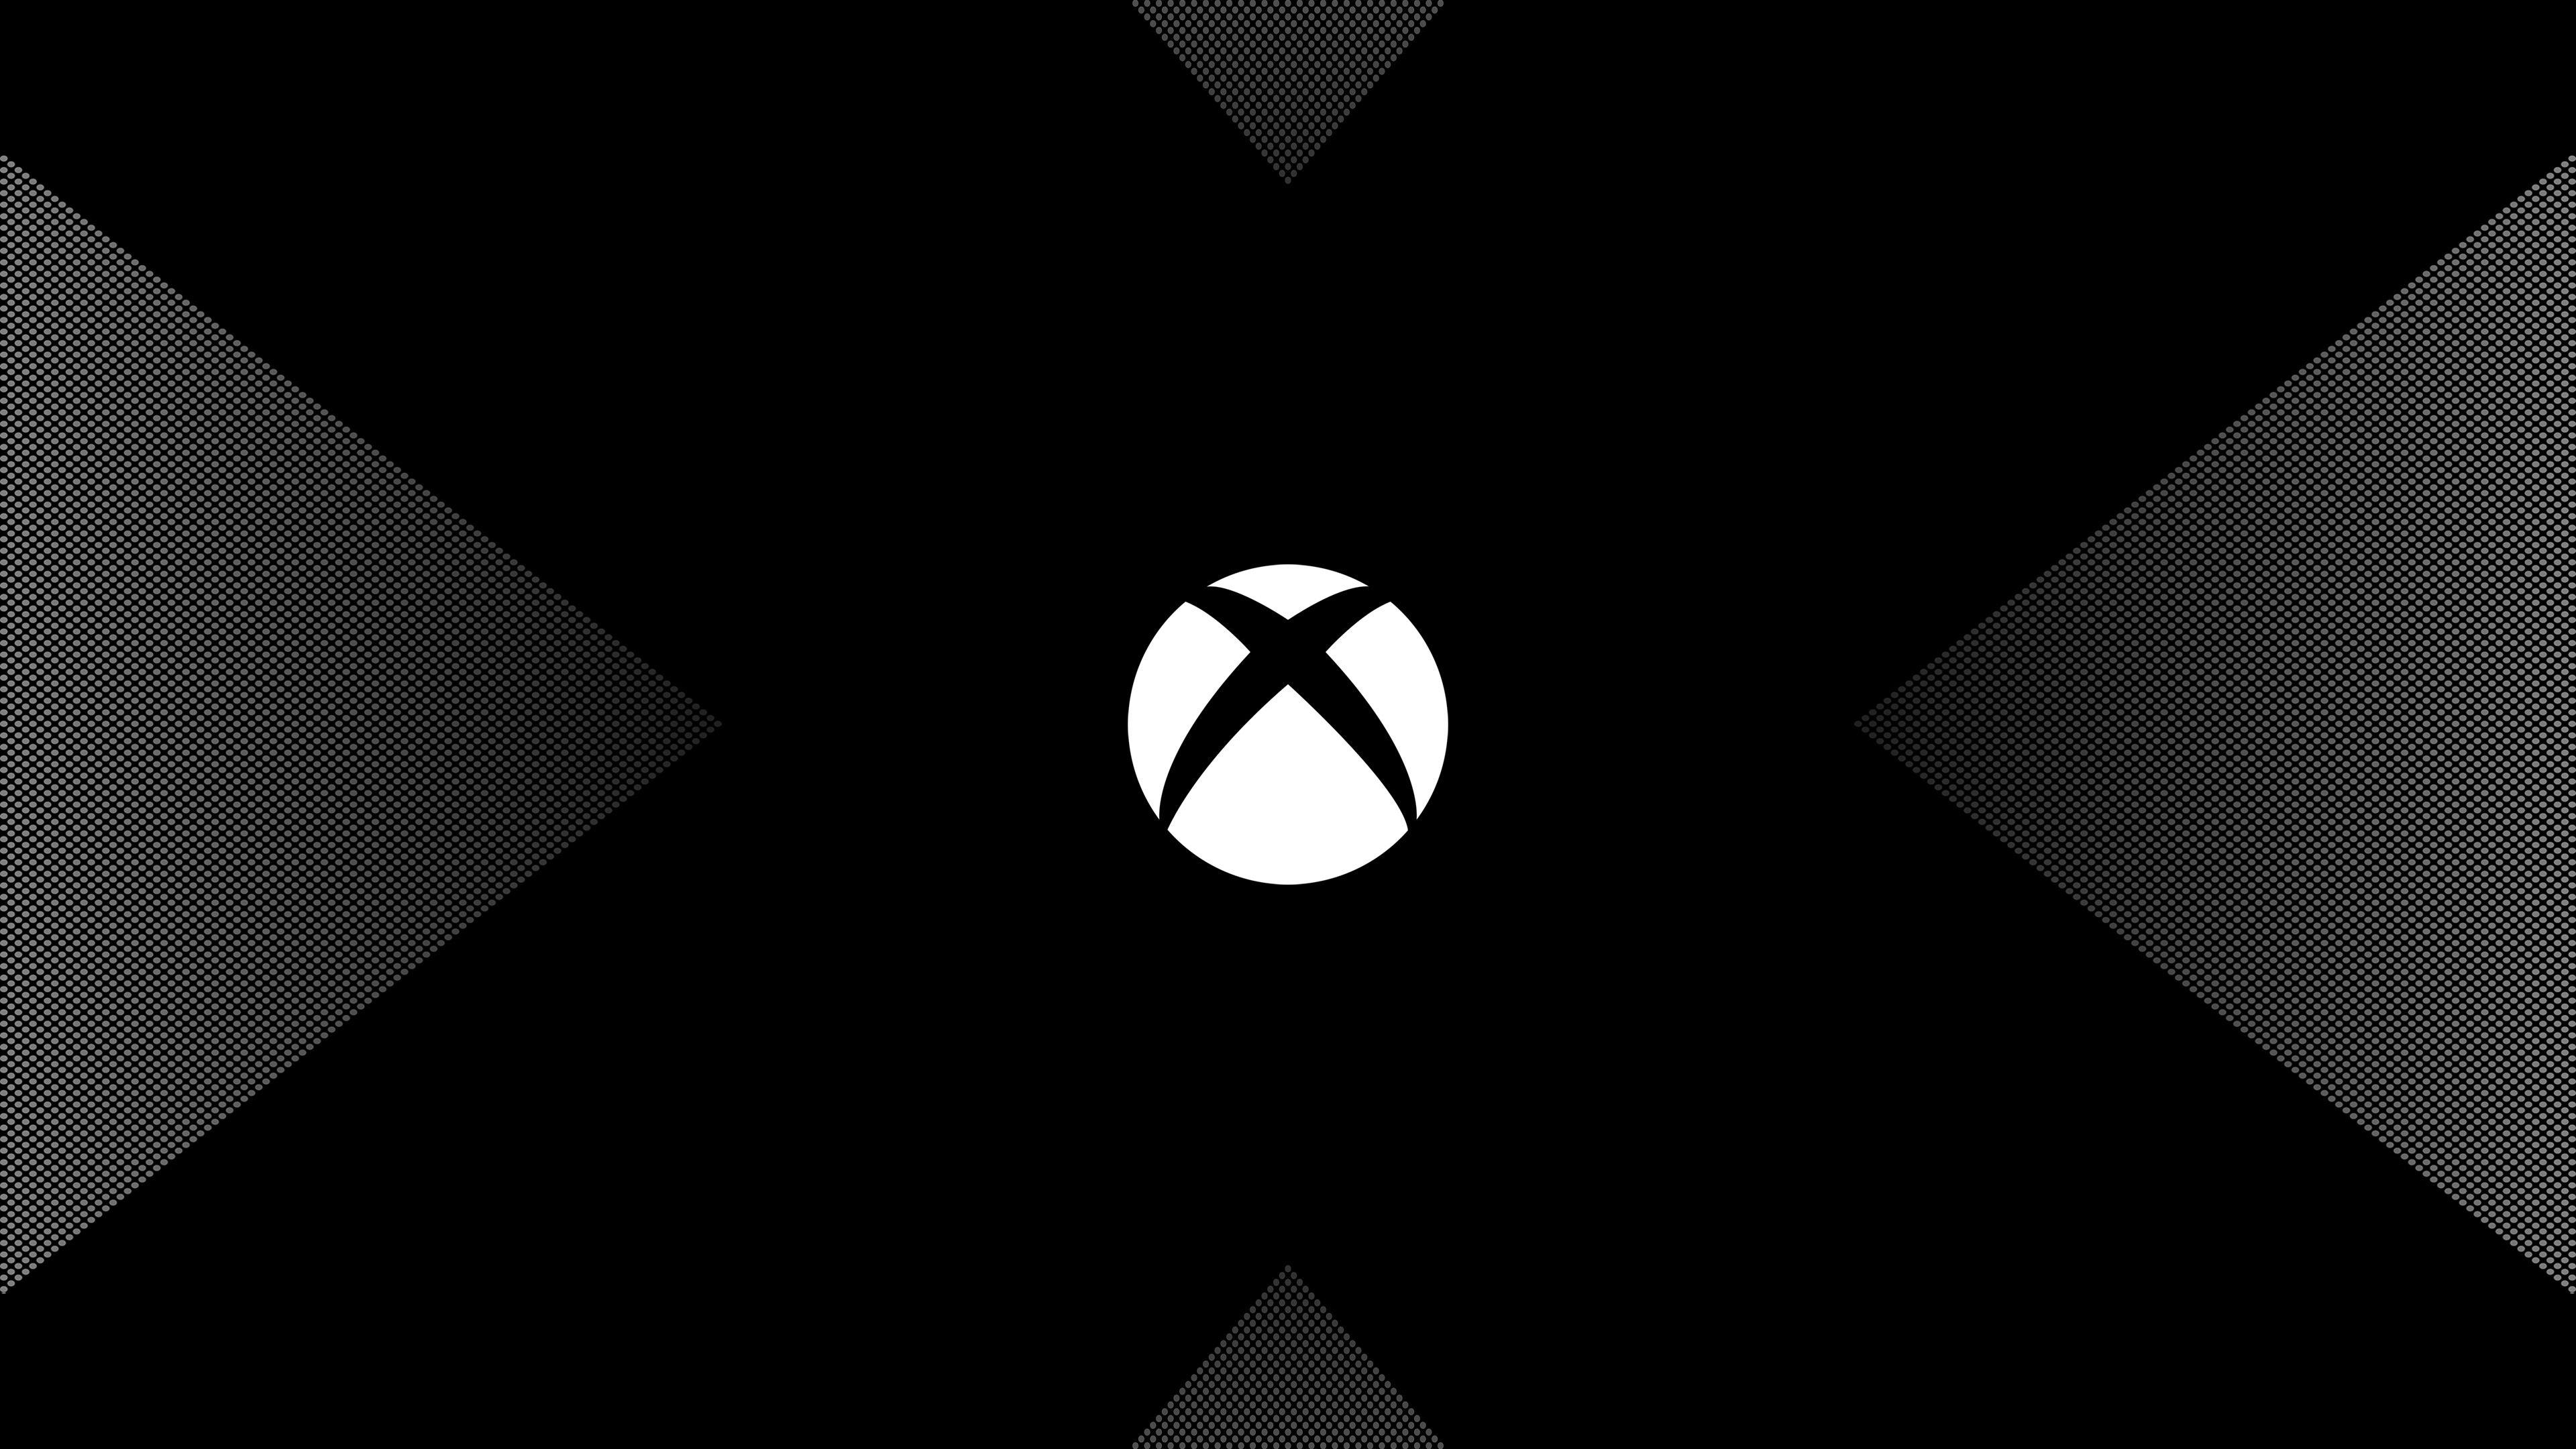 Xbox 4k Wallpapers Wallpaper Cave